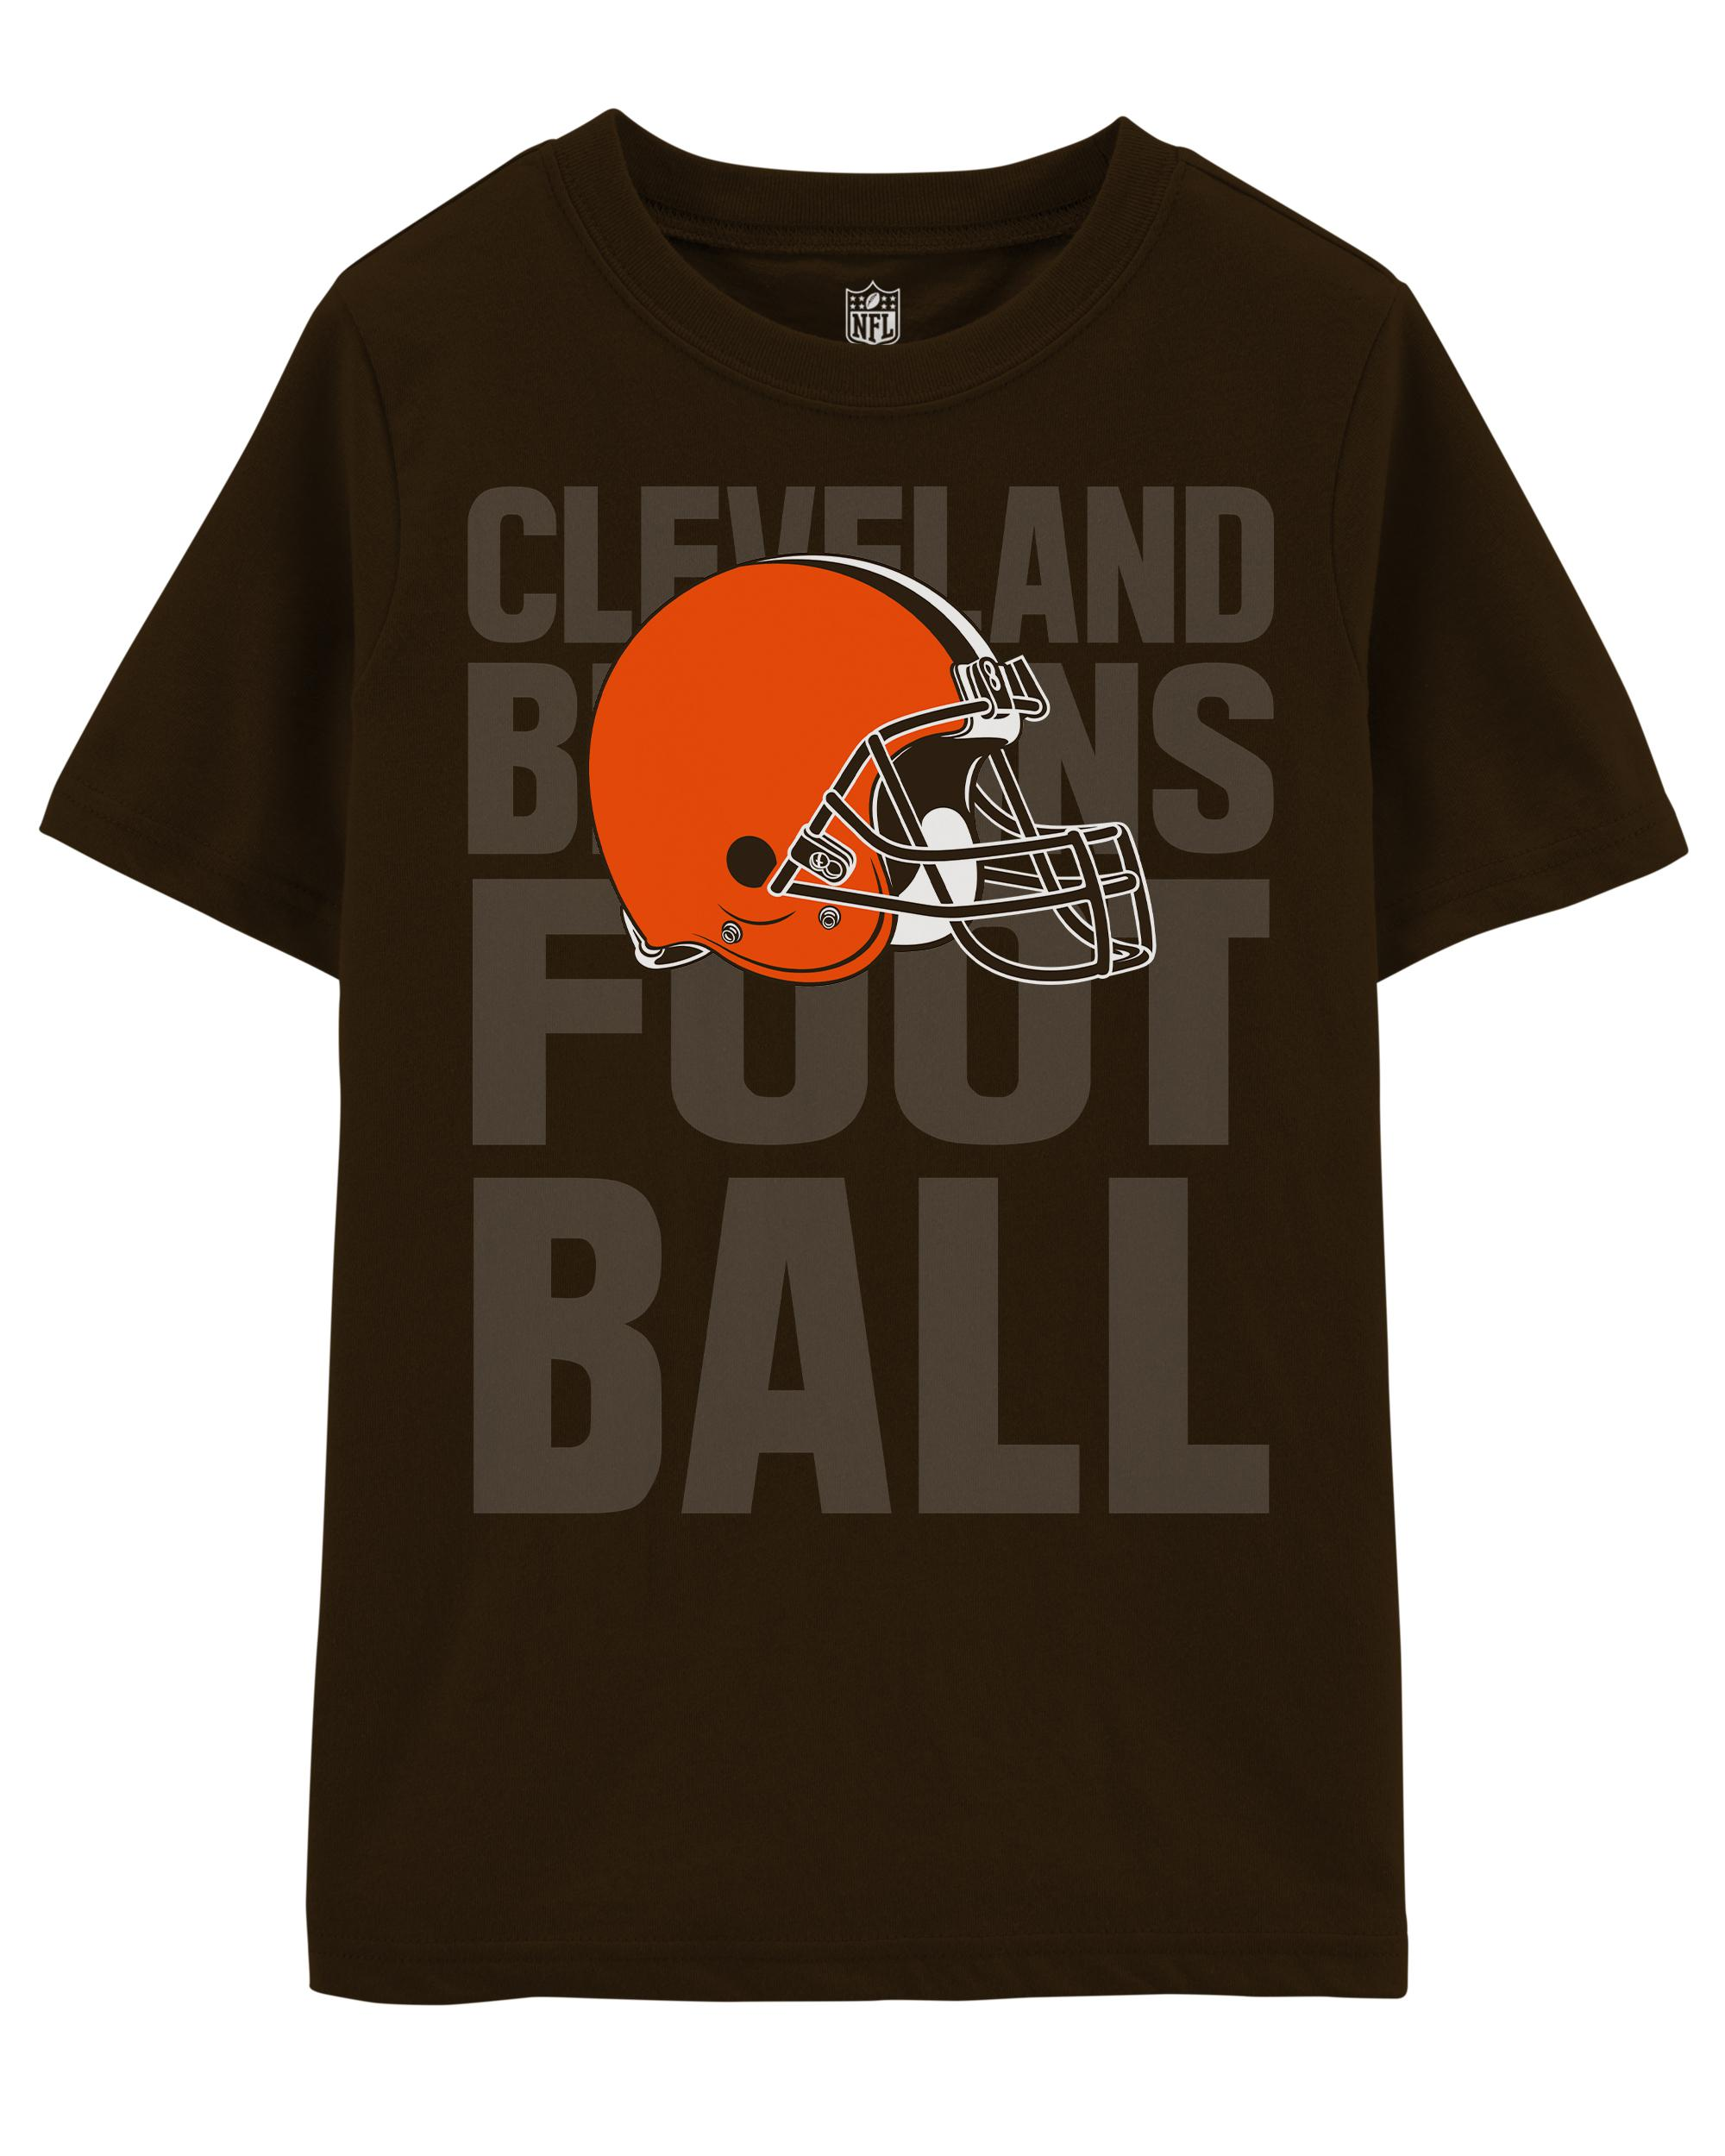 7a4943b4 NFL Cleveland Browns Tee | carters.com